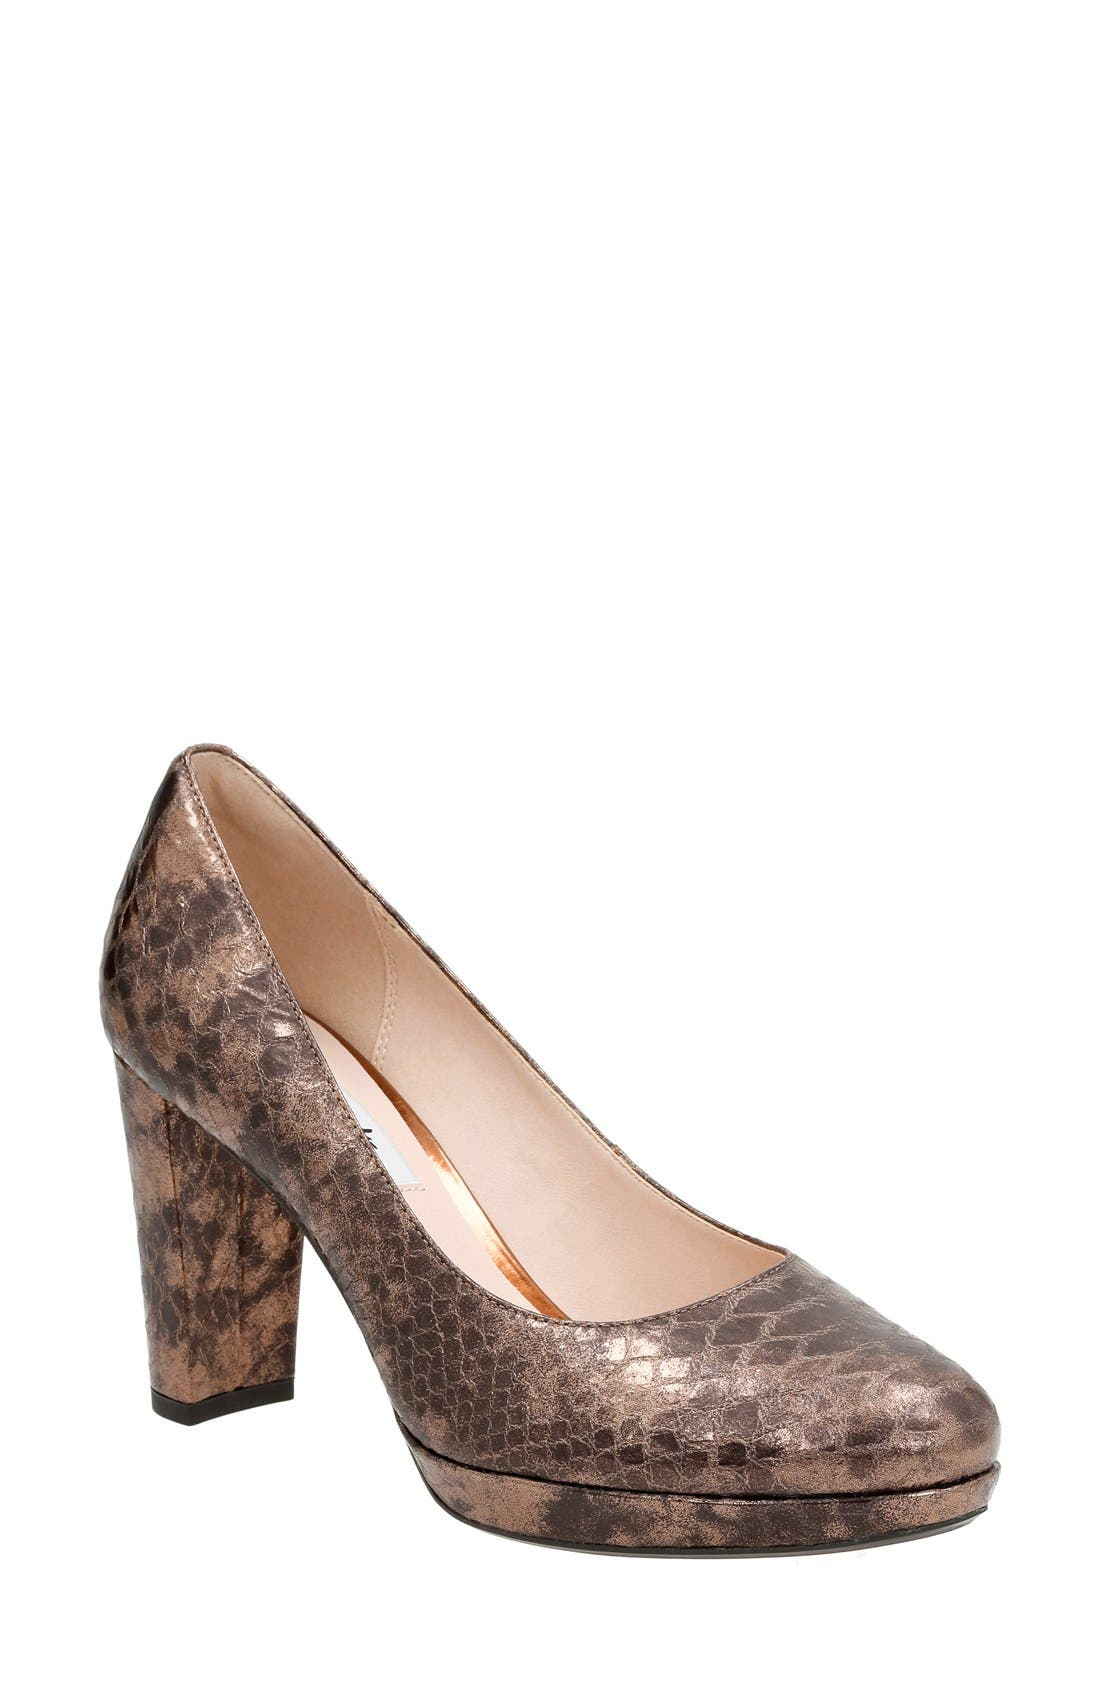 Kendra Sienna Almond Toe Pump,                             Main thumbnail 1, color,                             Bronze Snake Leather